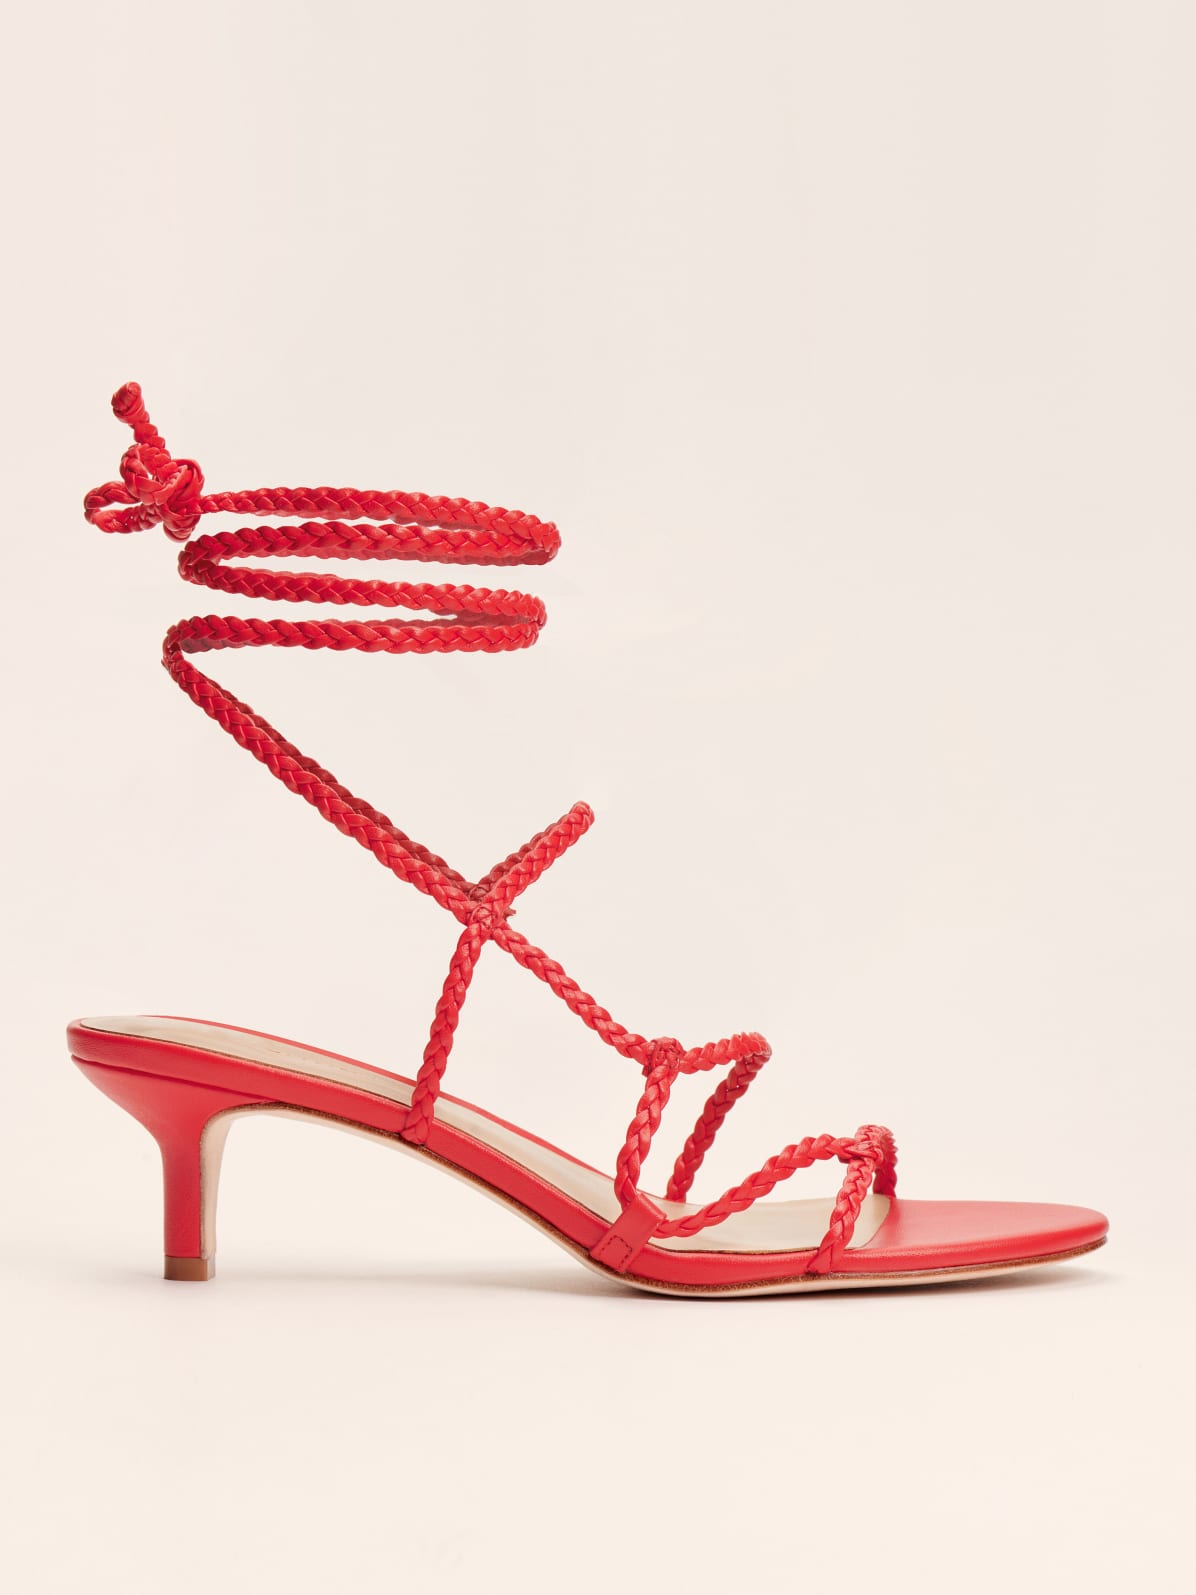 Reformation - Porto Sandal | $218For being fancy when it's like 87 with 90% humidity.